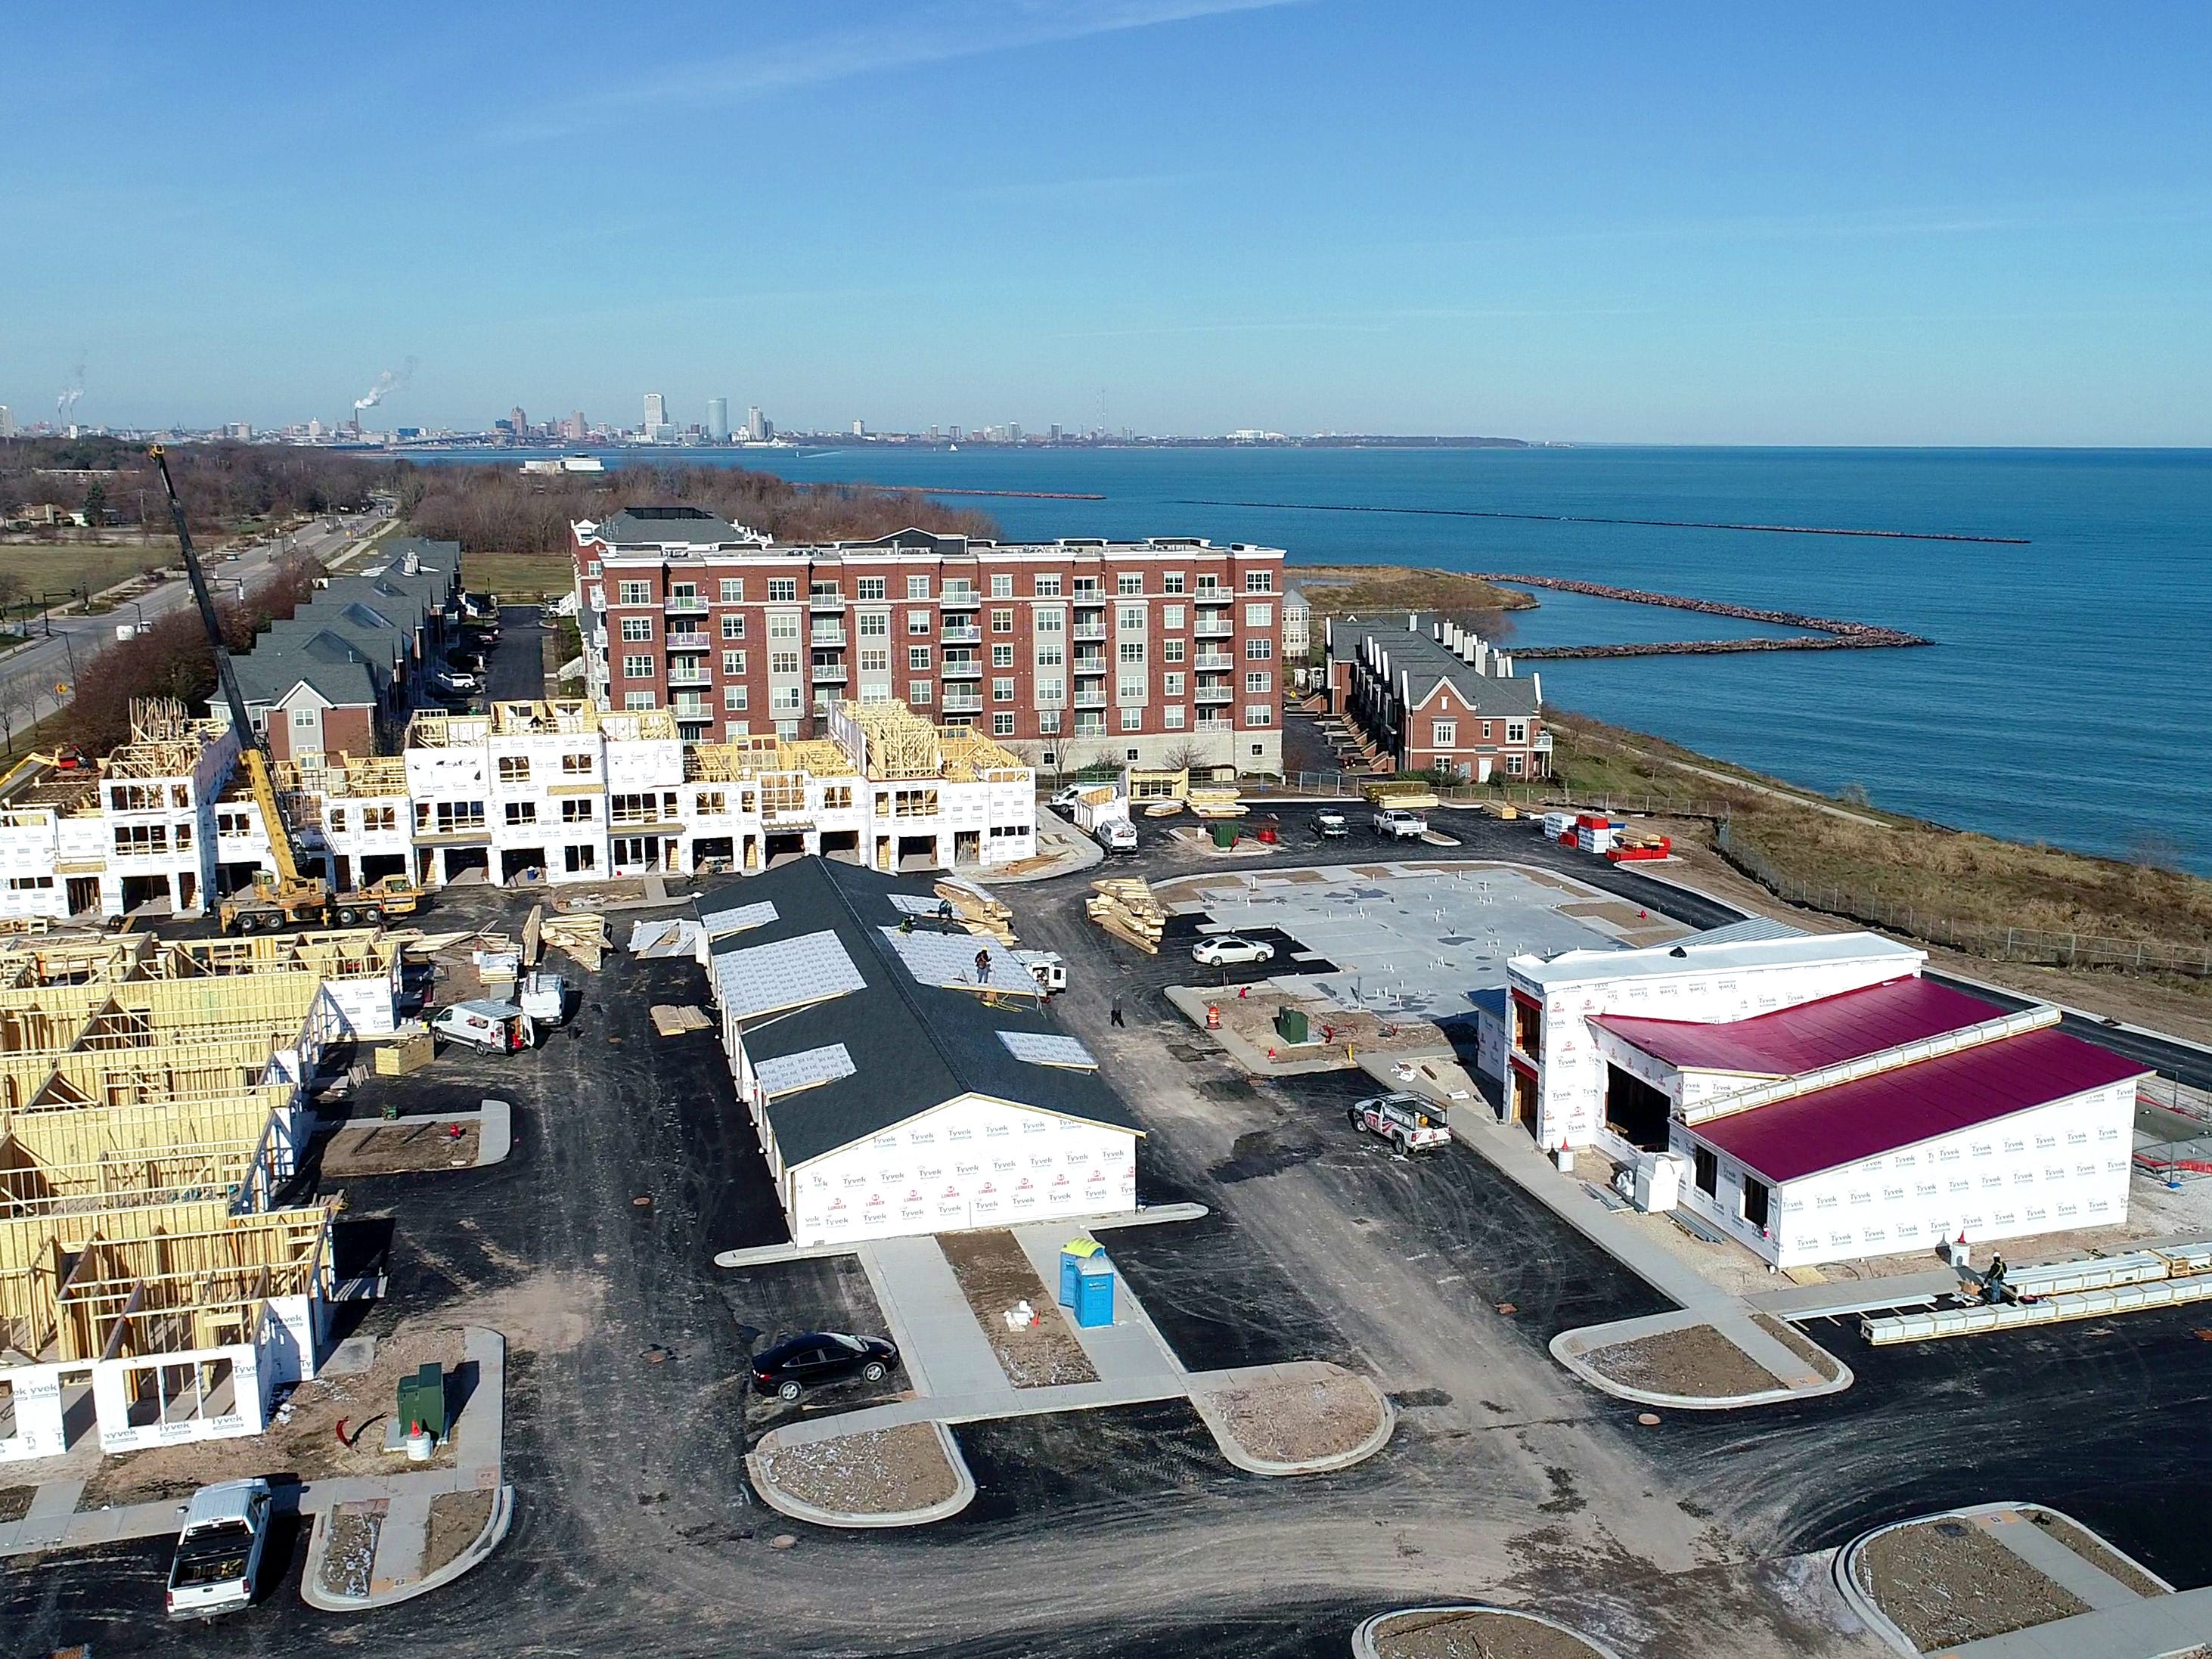 Mariner Apartments are under construction at 4000 S. Lake Drive, south of Park Shore condo development (upper). Two new apartment projects are reviving long-delayed plans to redevelop that community's lakefront.